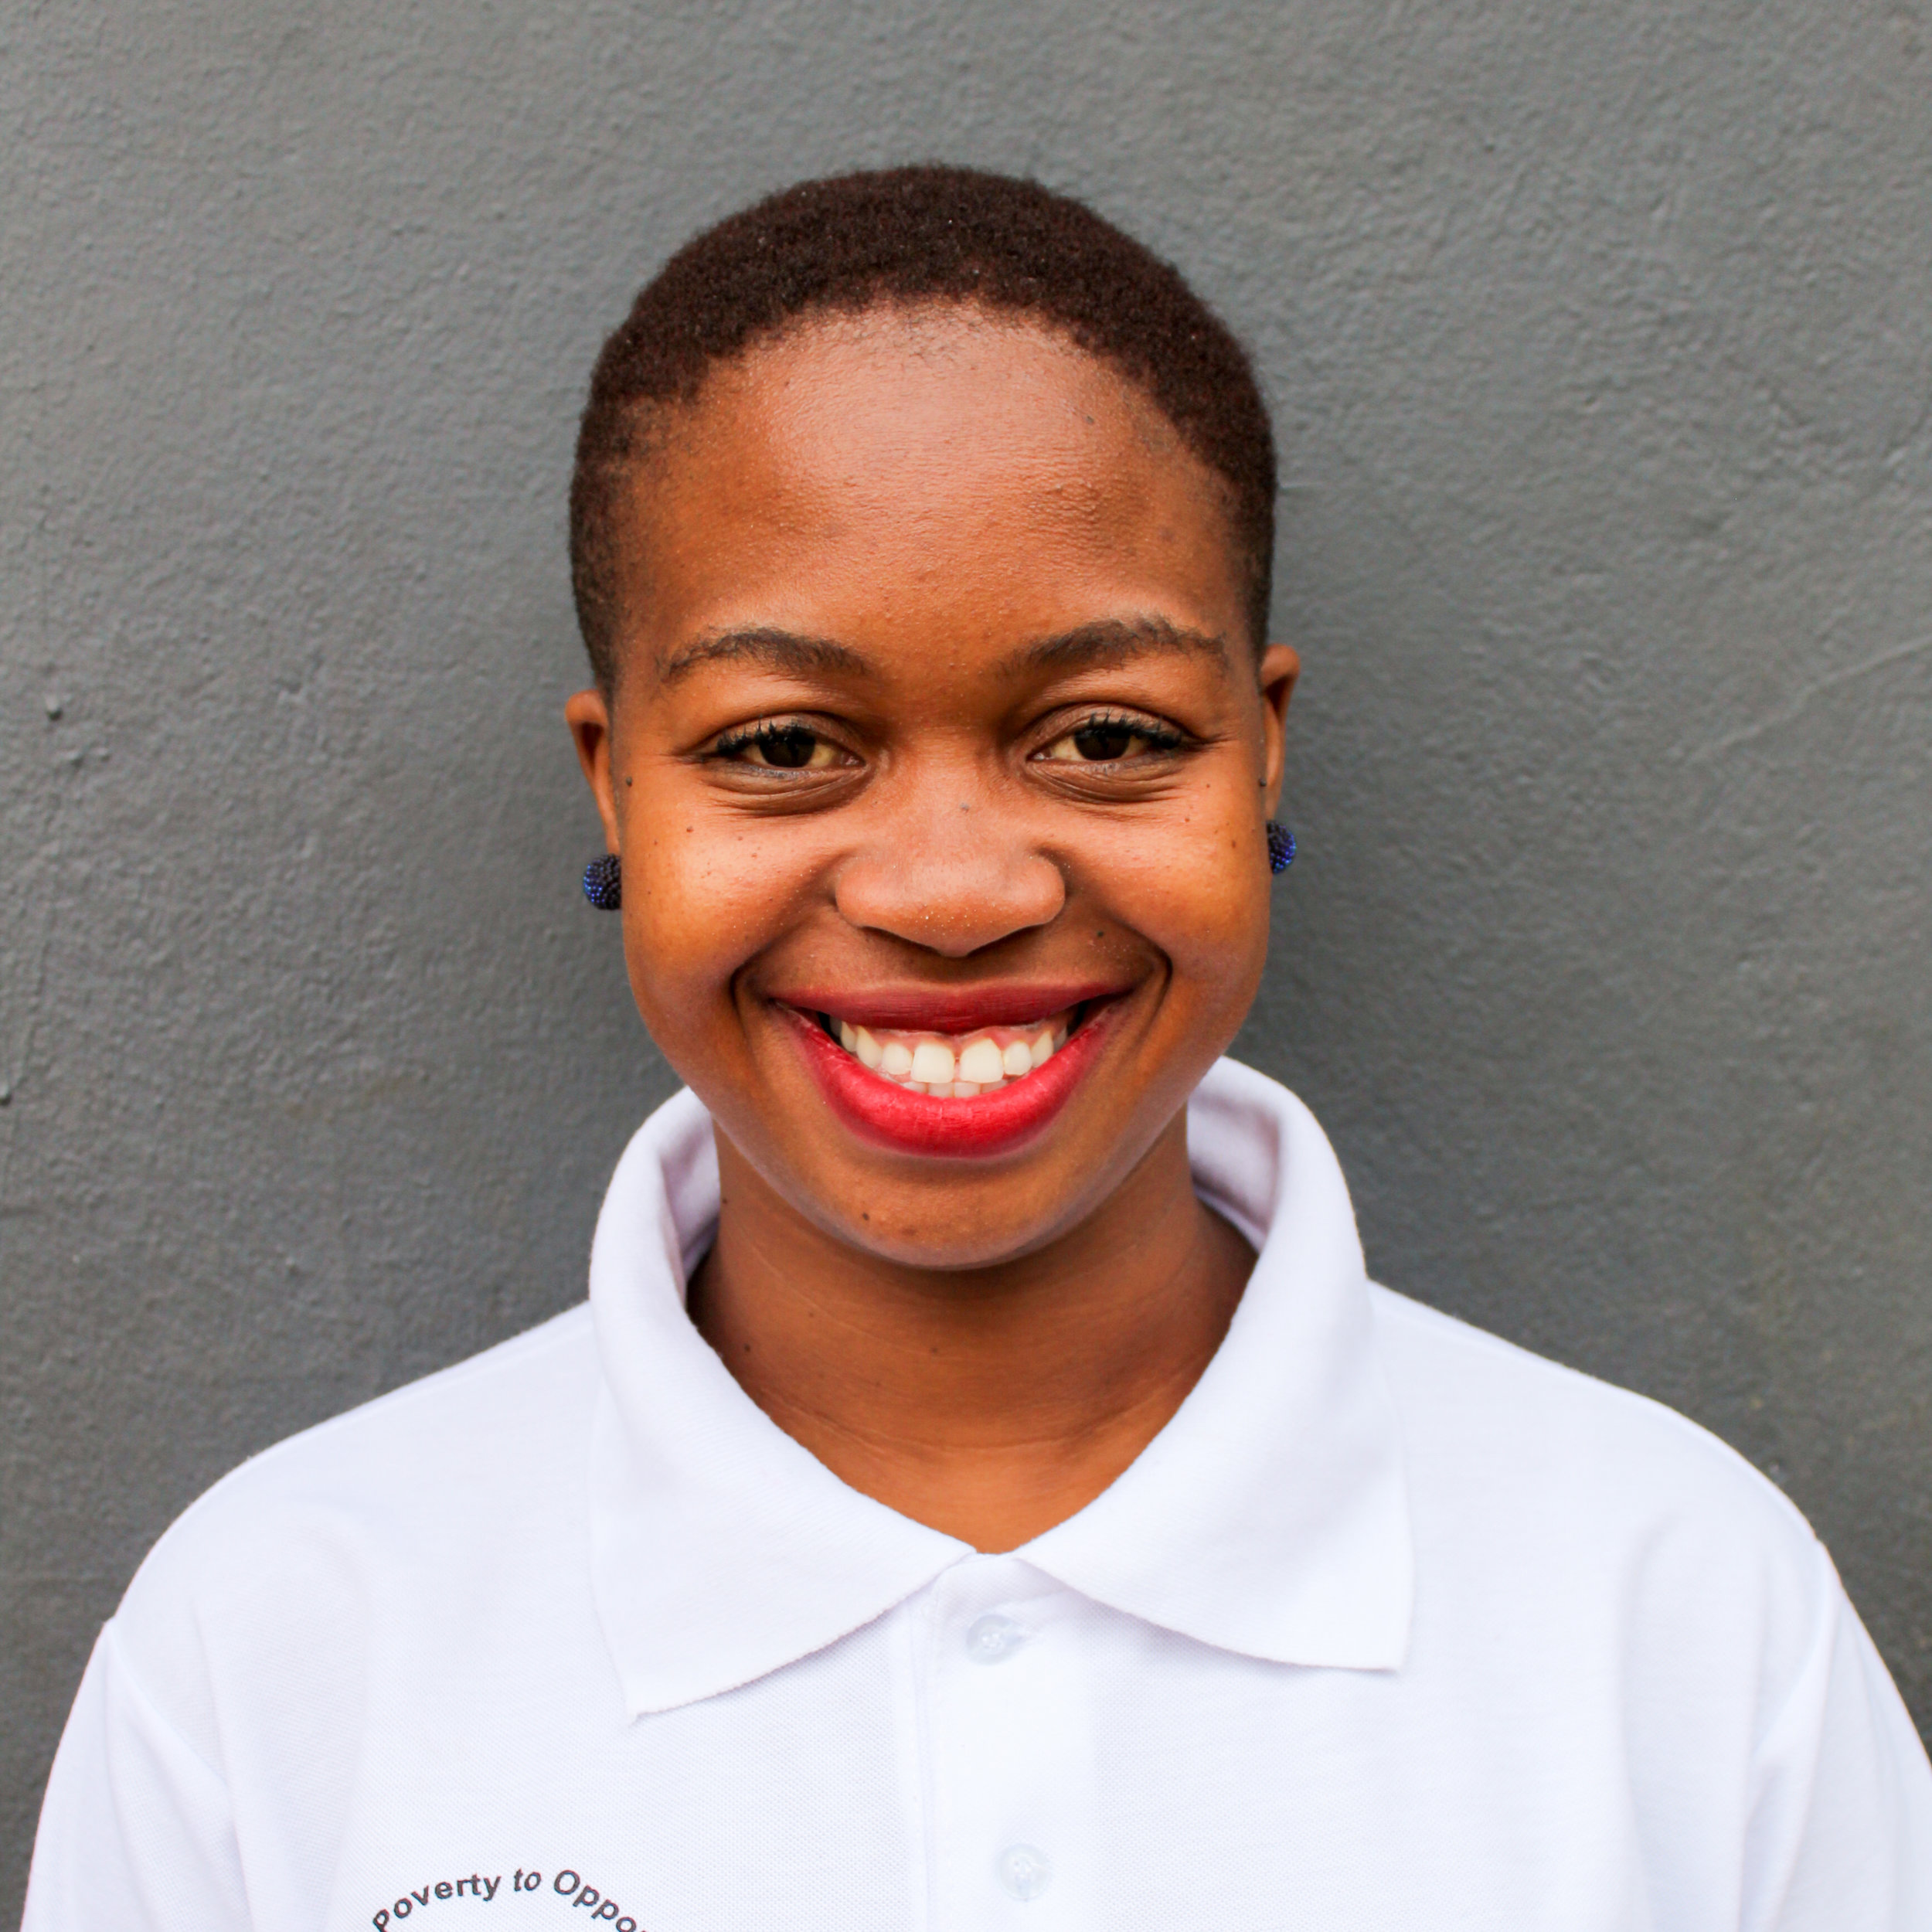 Keketso Baloyi: High School Program Coordinator    kbaloyi@kliptownyouthprogram.org.za   Keketso completed her matric in the year 2009 and joined KYP in 2015 as a volunteer tutor in the primary school program. Through her commitment and dedication, she was chosen to join KYP's Education Team. She has a Project management certificate from Wits University. Keketso has passion for working with children and youth and what motivates her is her desire to make a difference in her community.